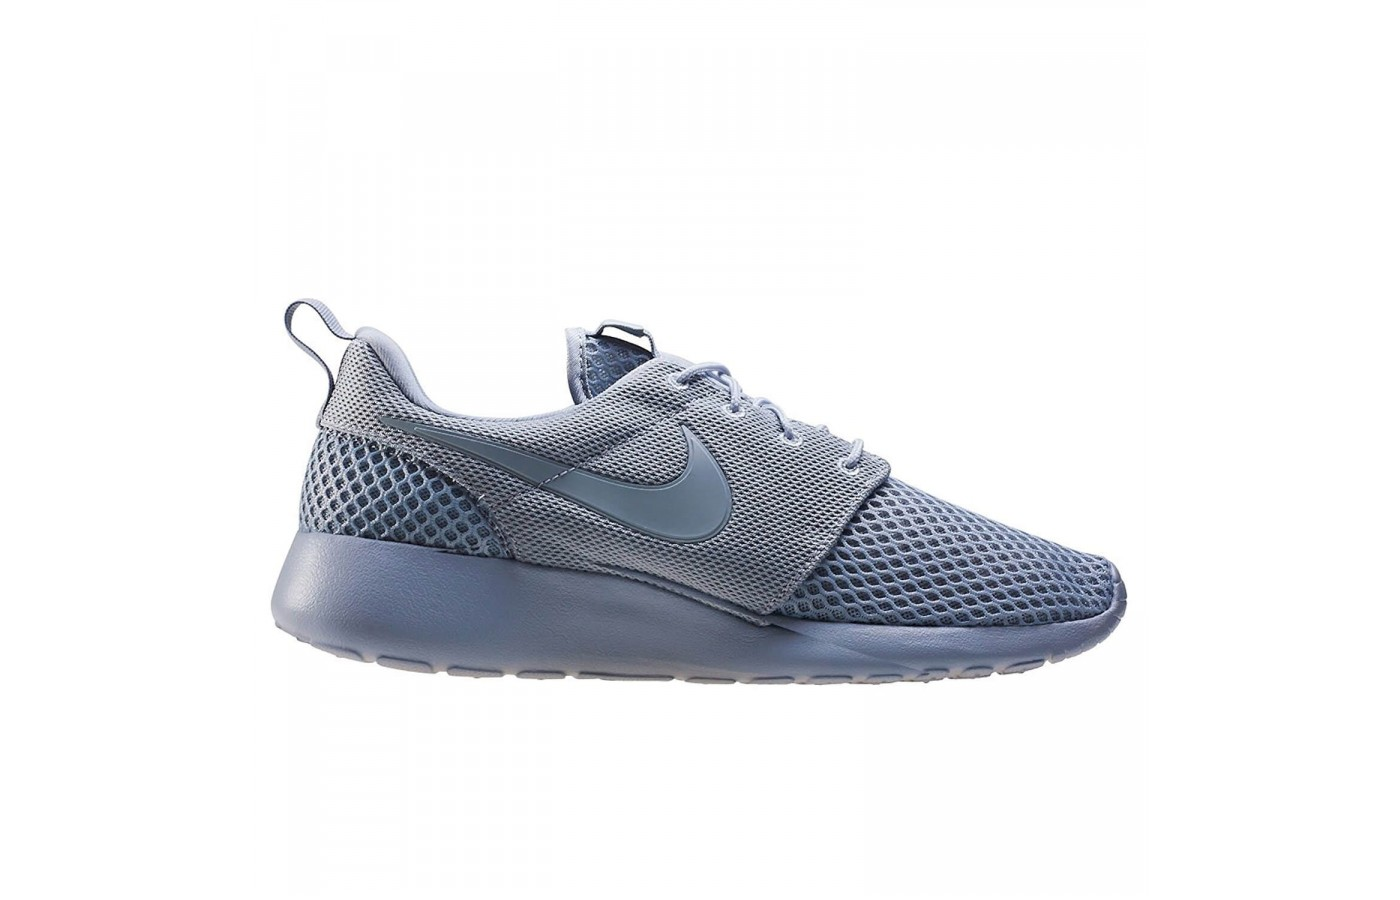 85997be43825 ... The Nike Roshe One SE features a midsole with a high drop made from  Phylon EVA  Nike s impeccable sense of style ...